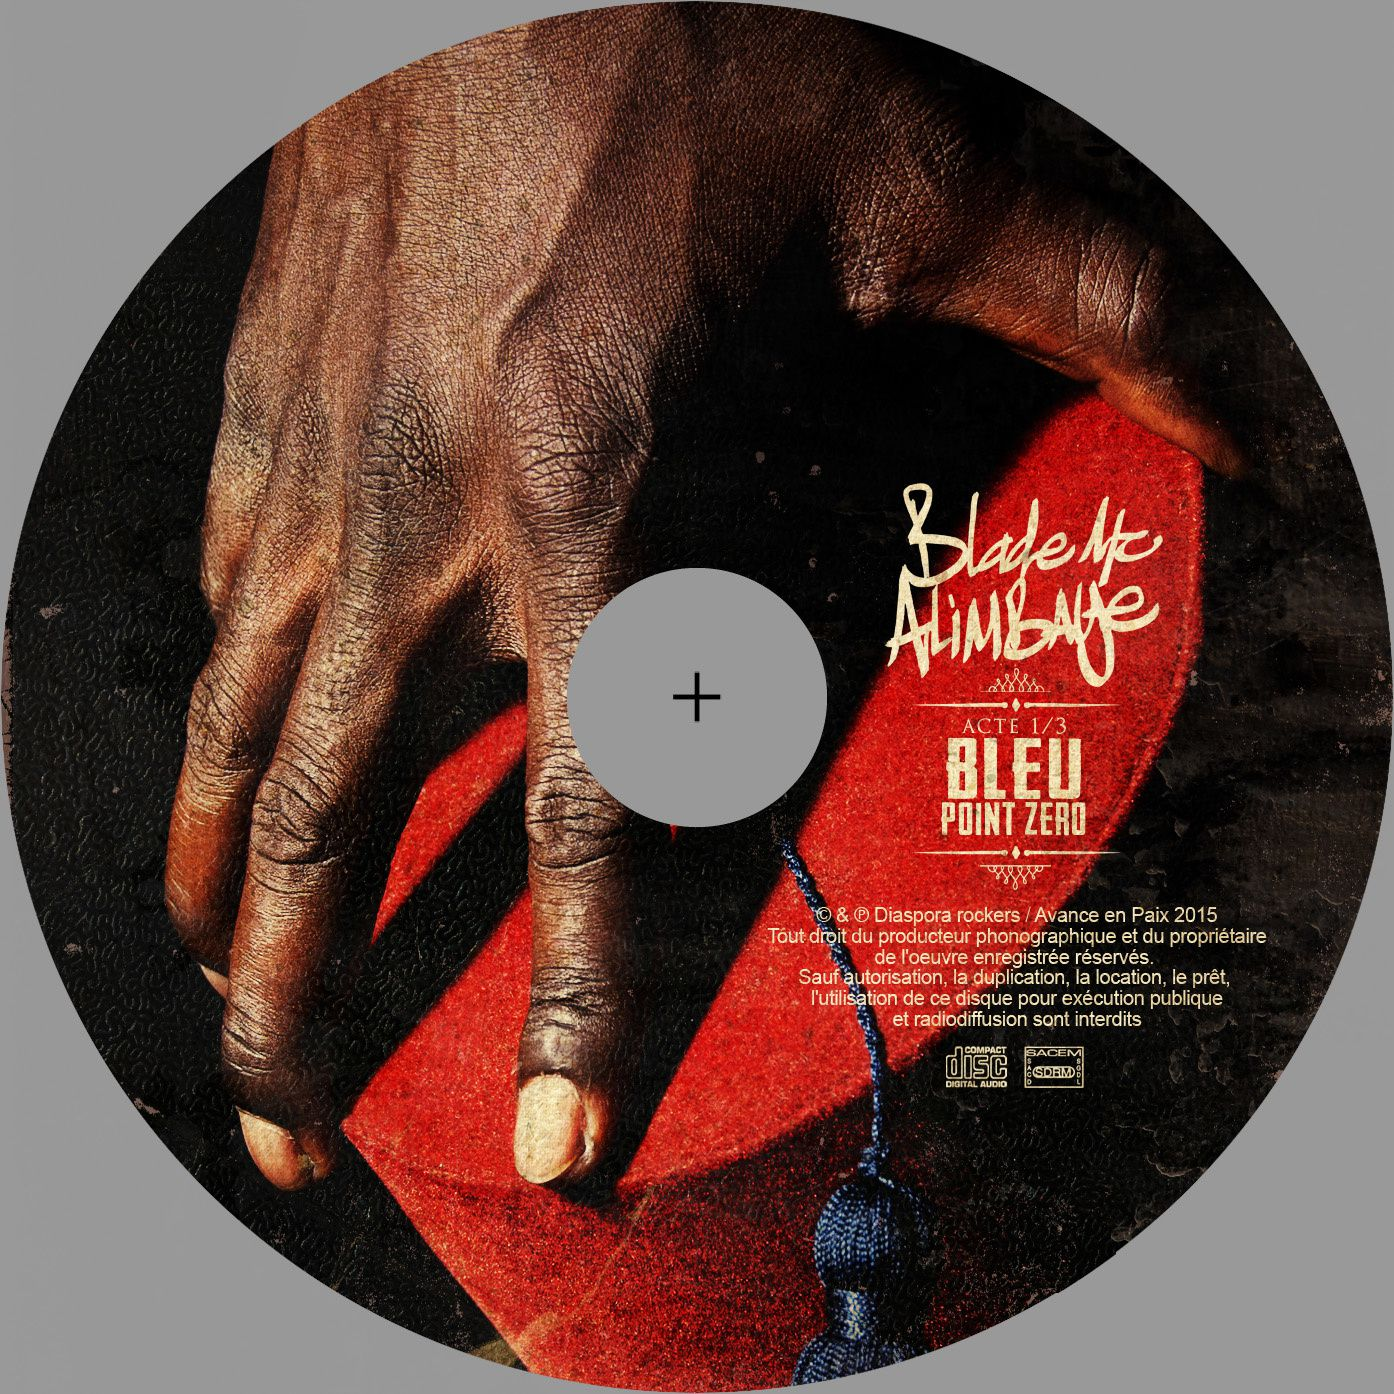 artwork album Blade Mc Alimbaye - Bleu Point Zero - Acte 1/3